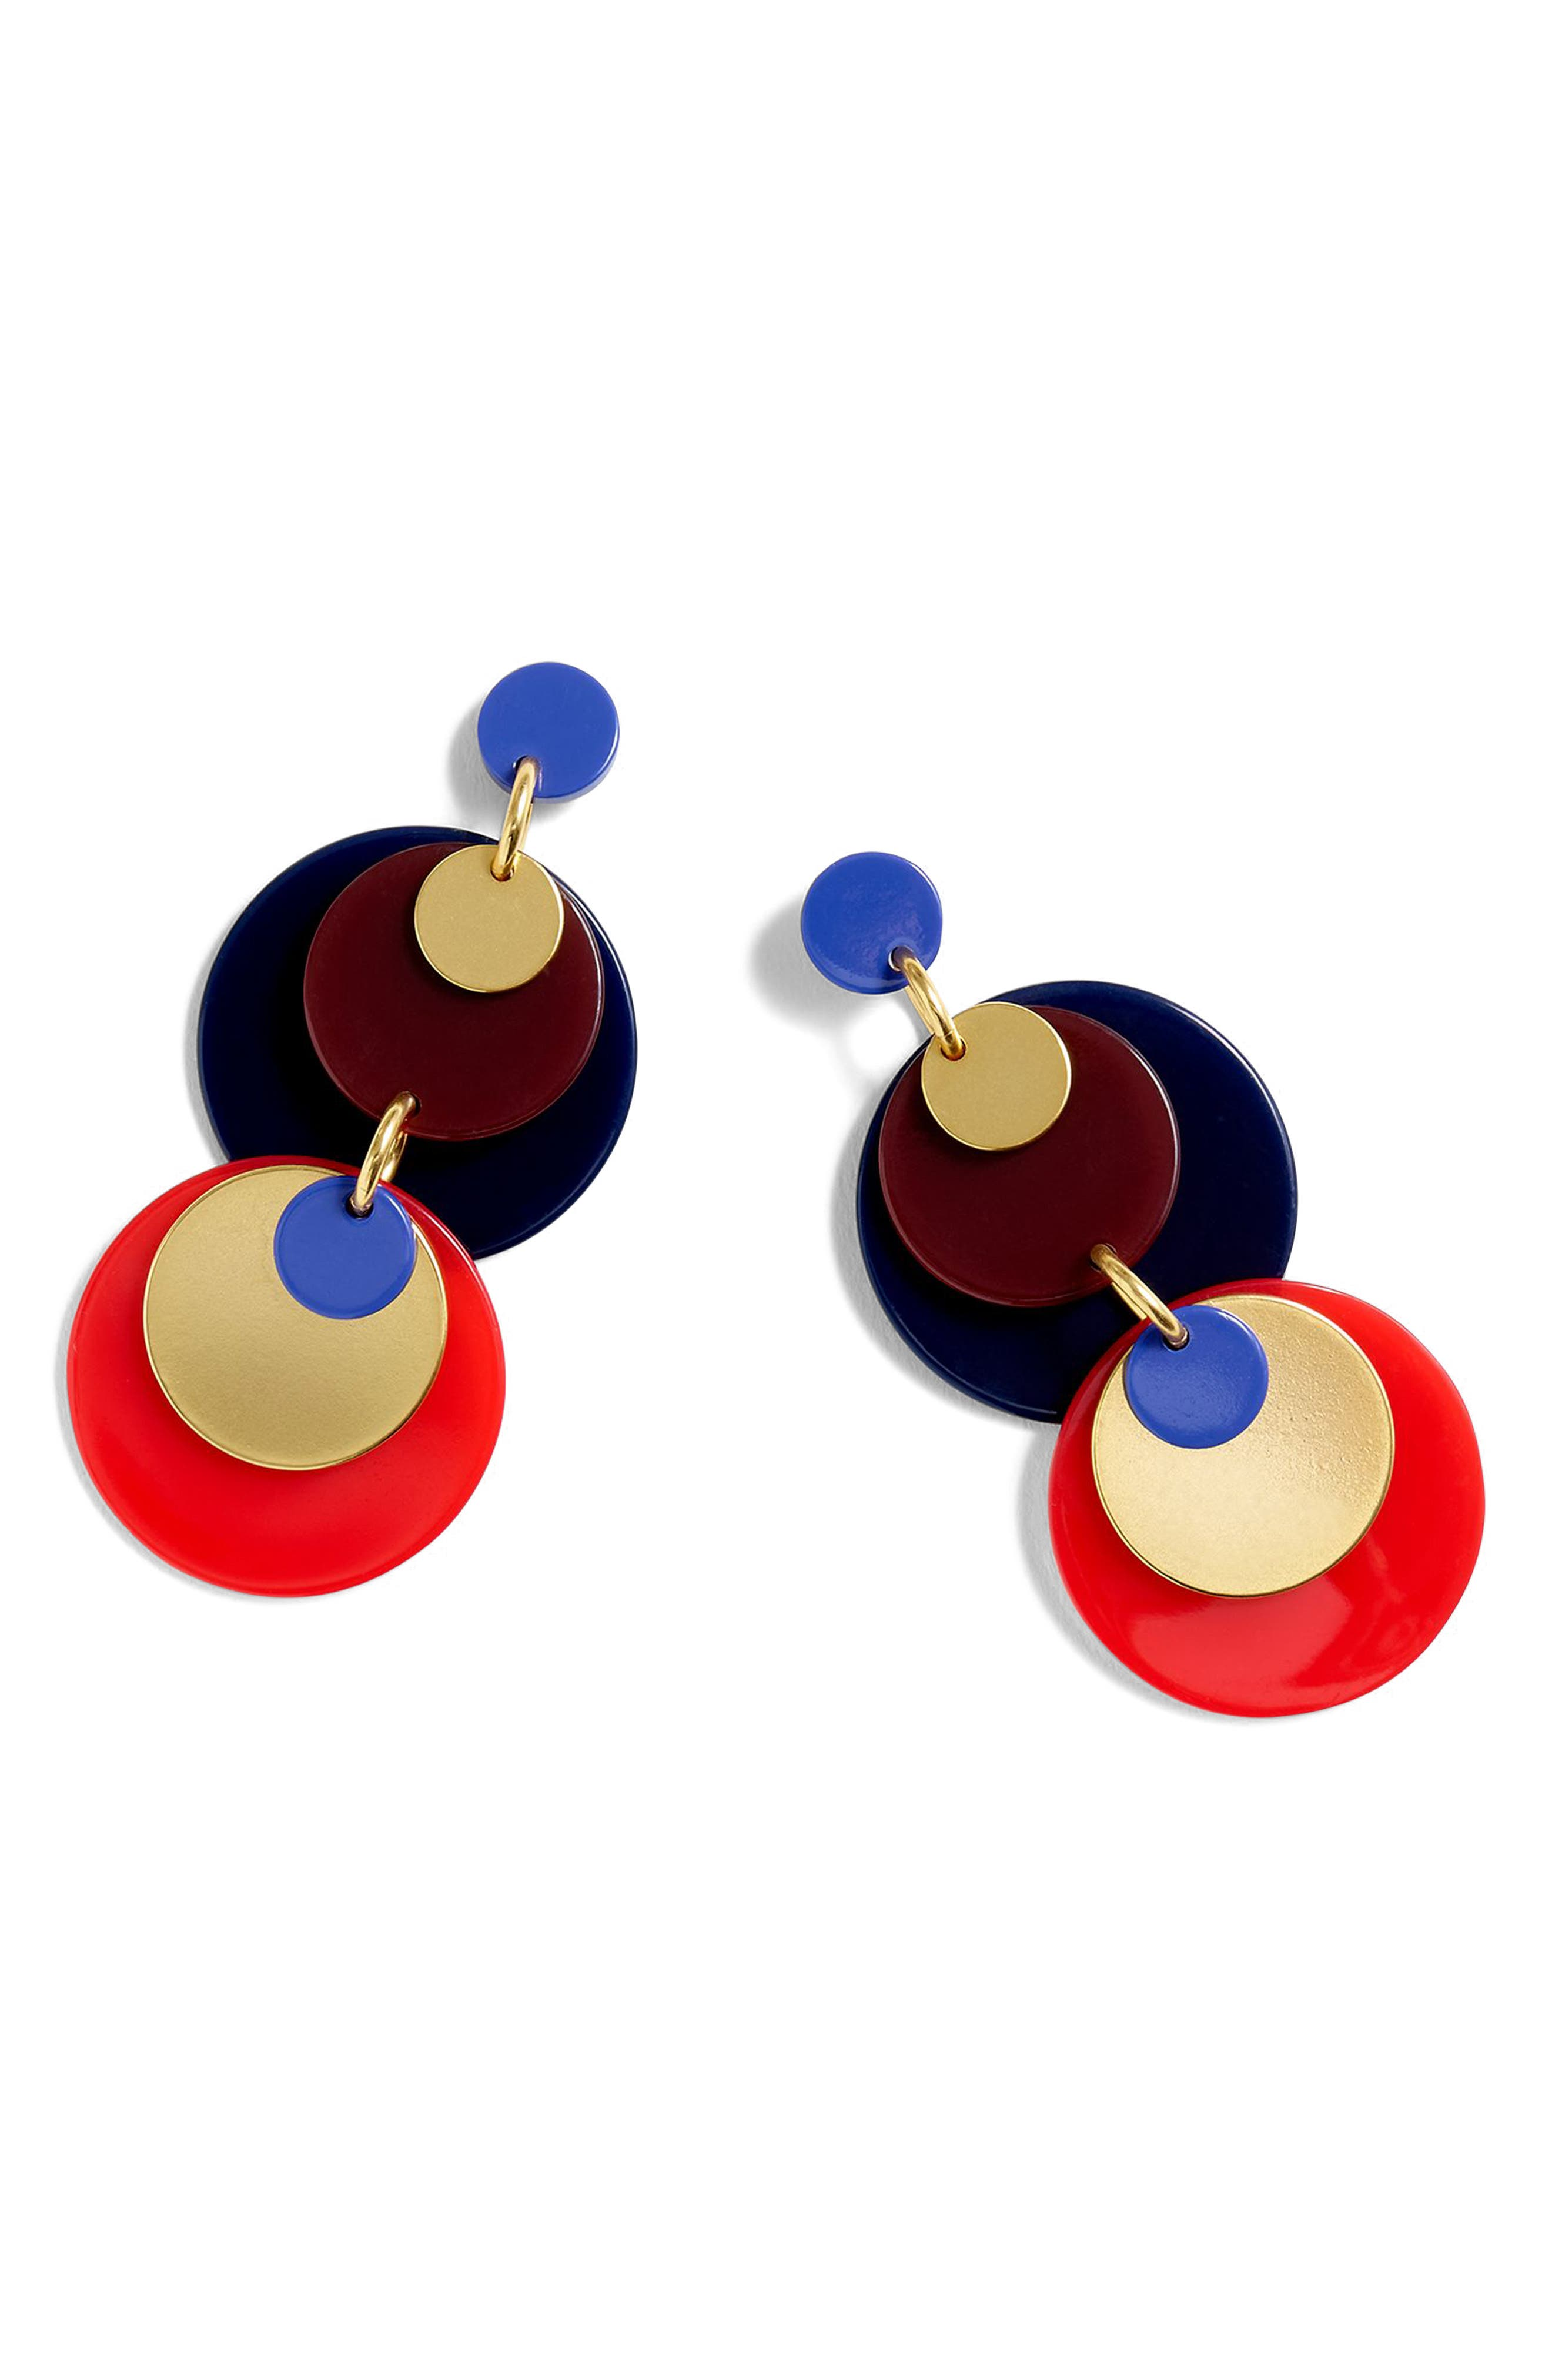 Abba Statement Disc Earrings,                             Main thumbnail 1, color,                             600